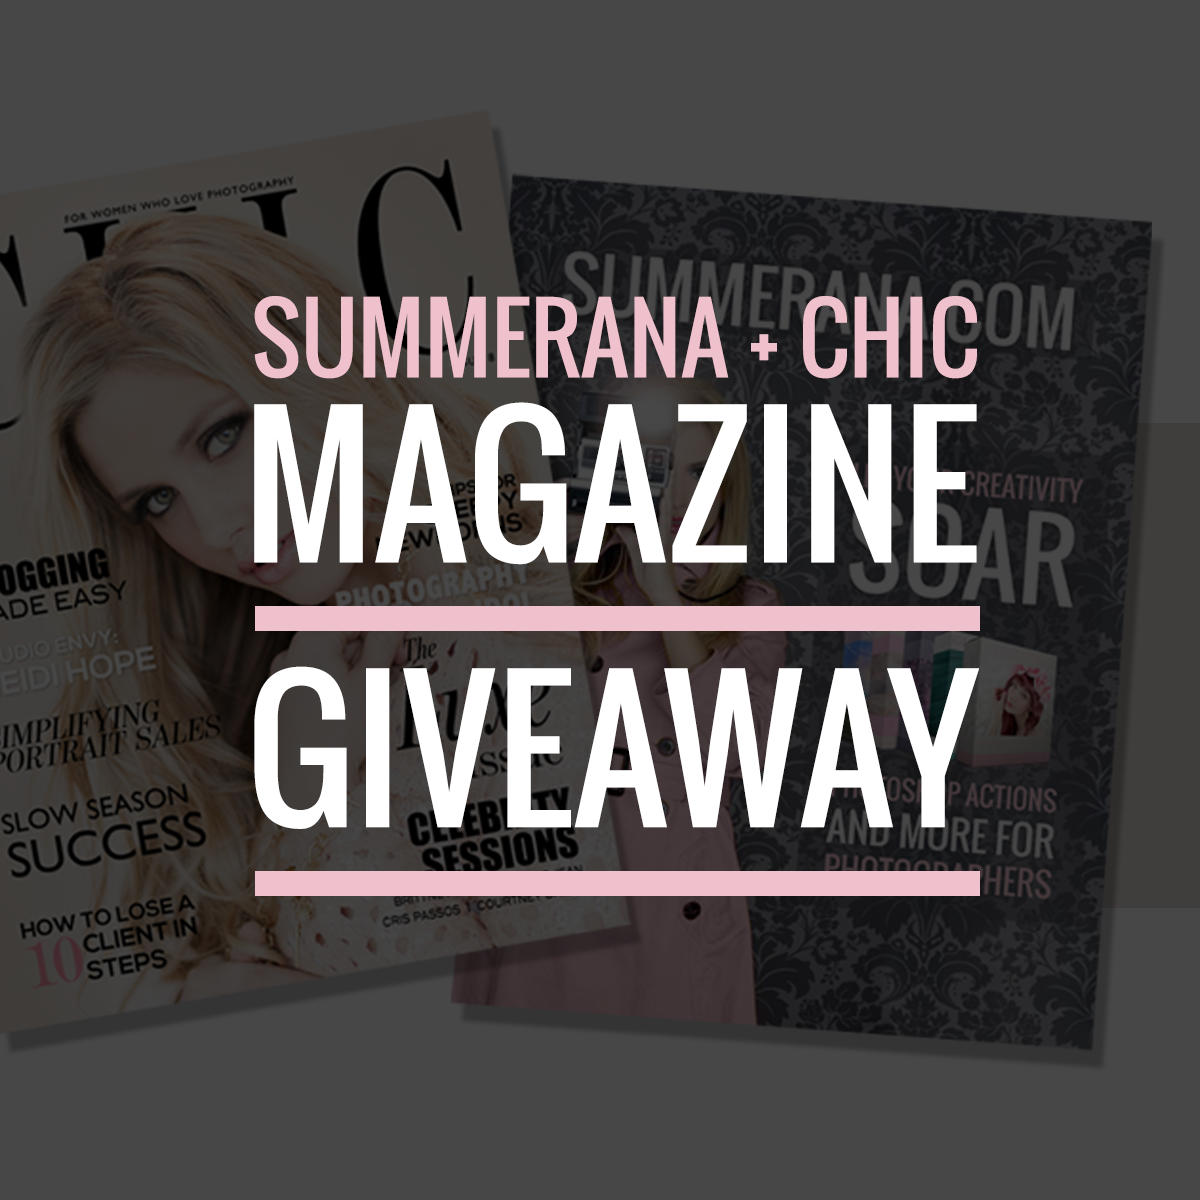 Chic Plus Summerana Magazine and Shop Giveaway